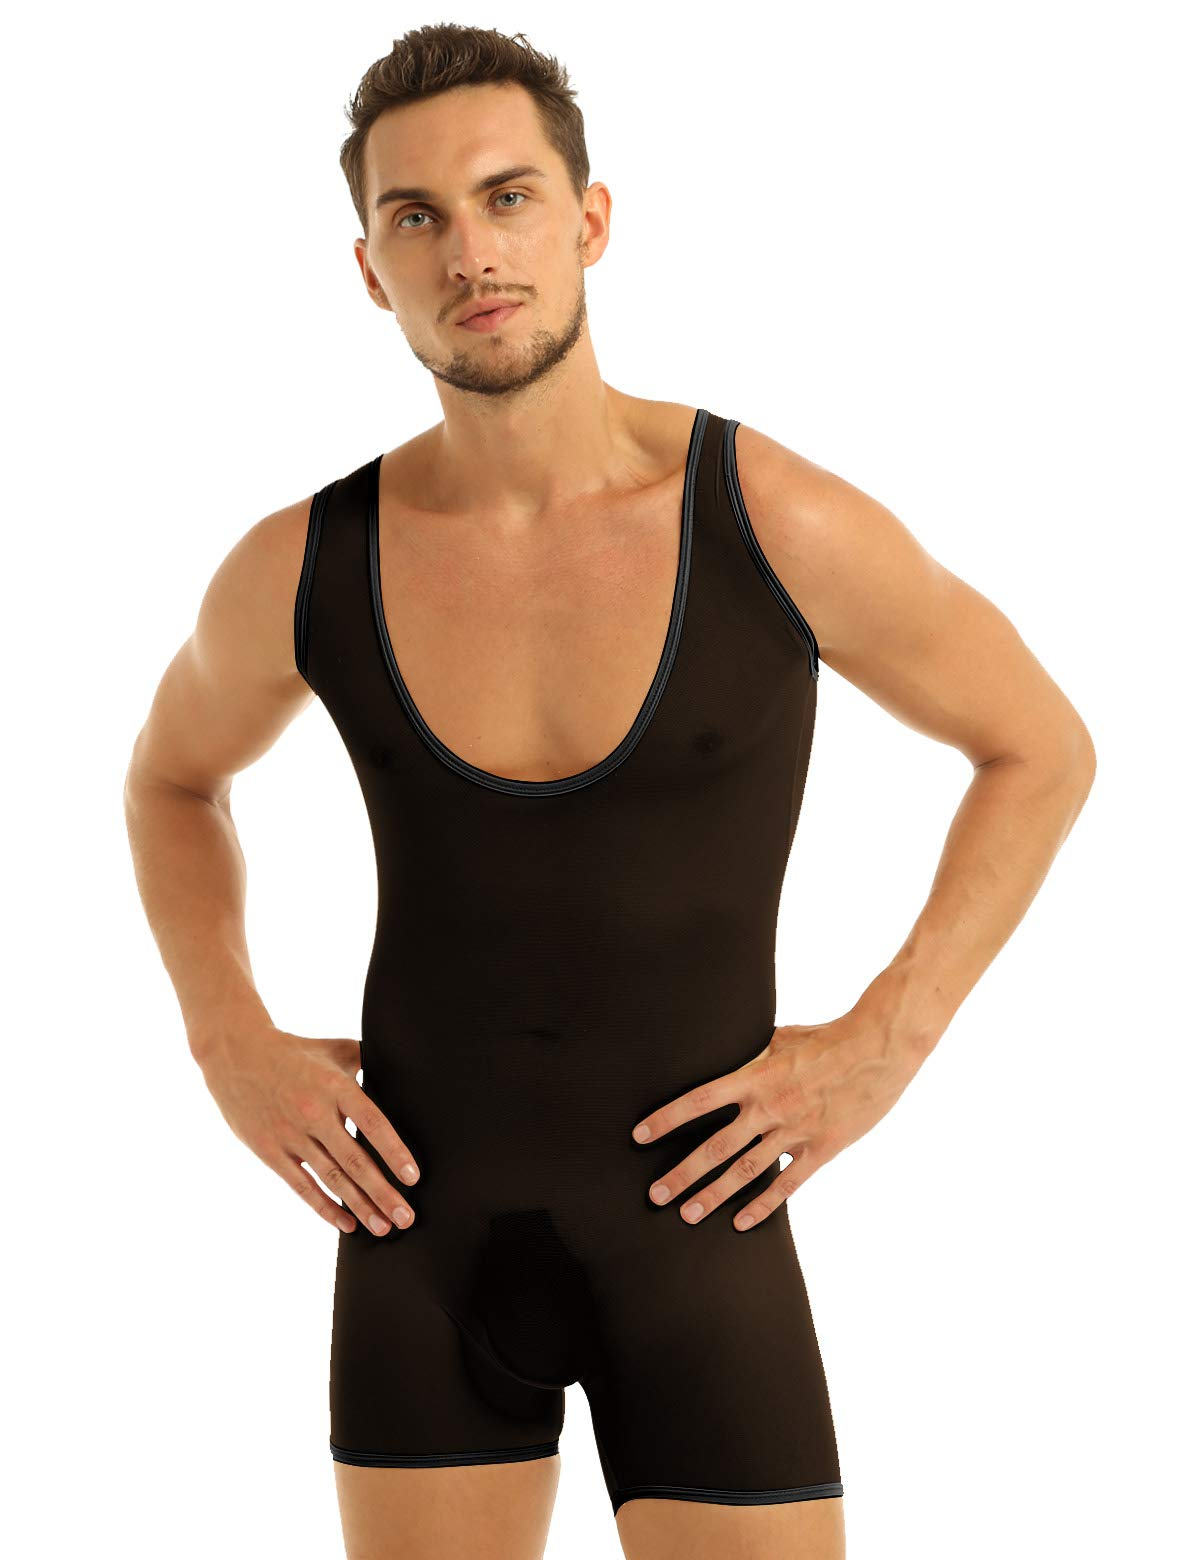 Inlzdz Mens See Through Sheer Mesh Tights Underwear One Piece Wrestling Singlet Leotard Bodysuit Black X Large